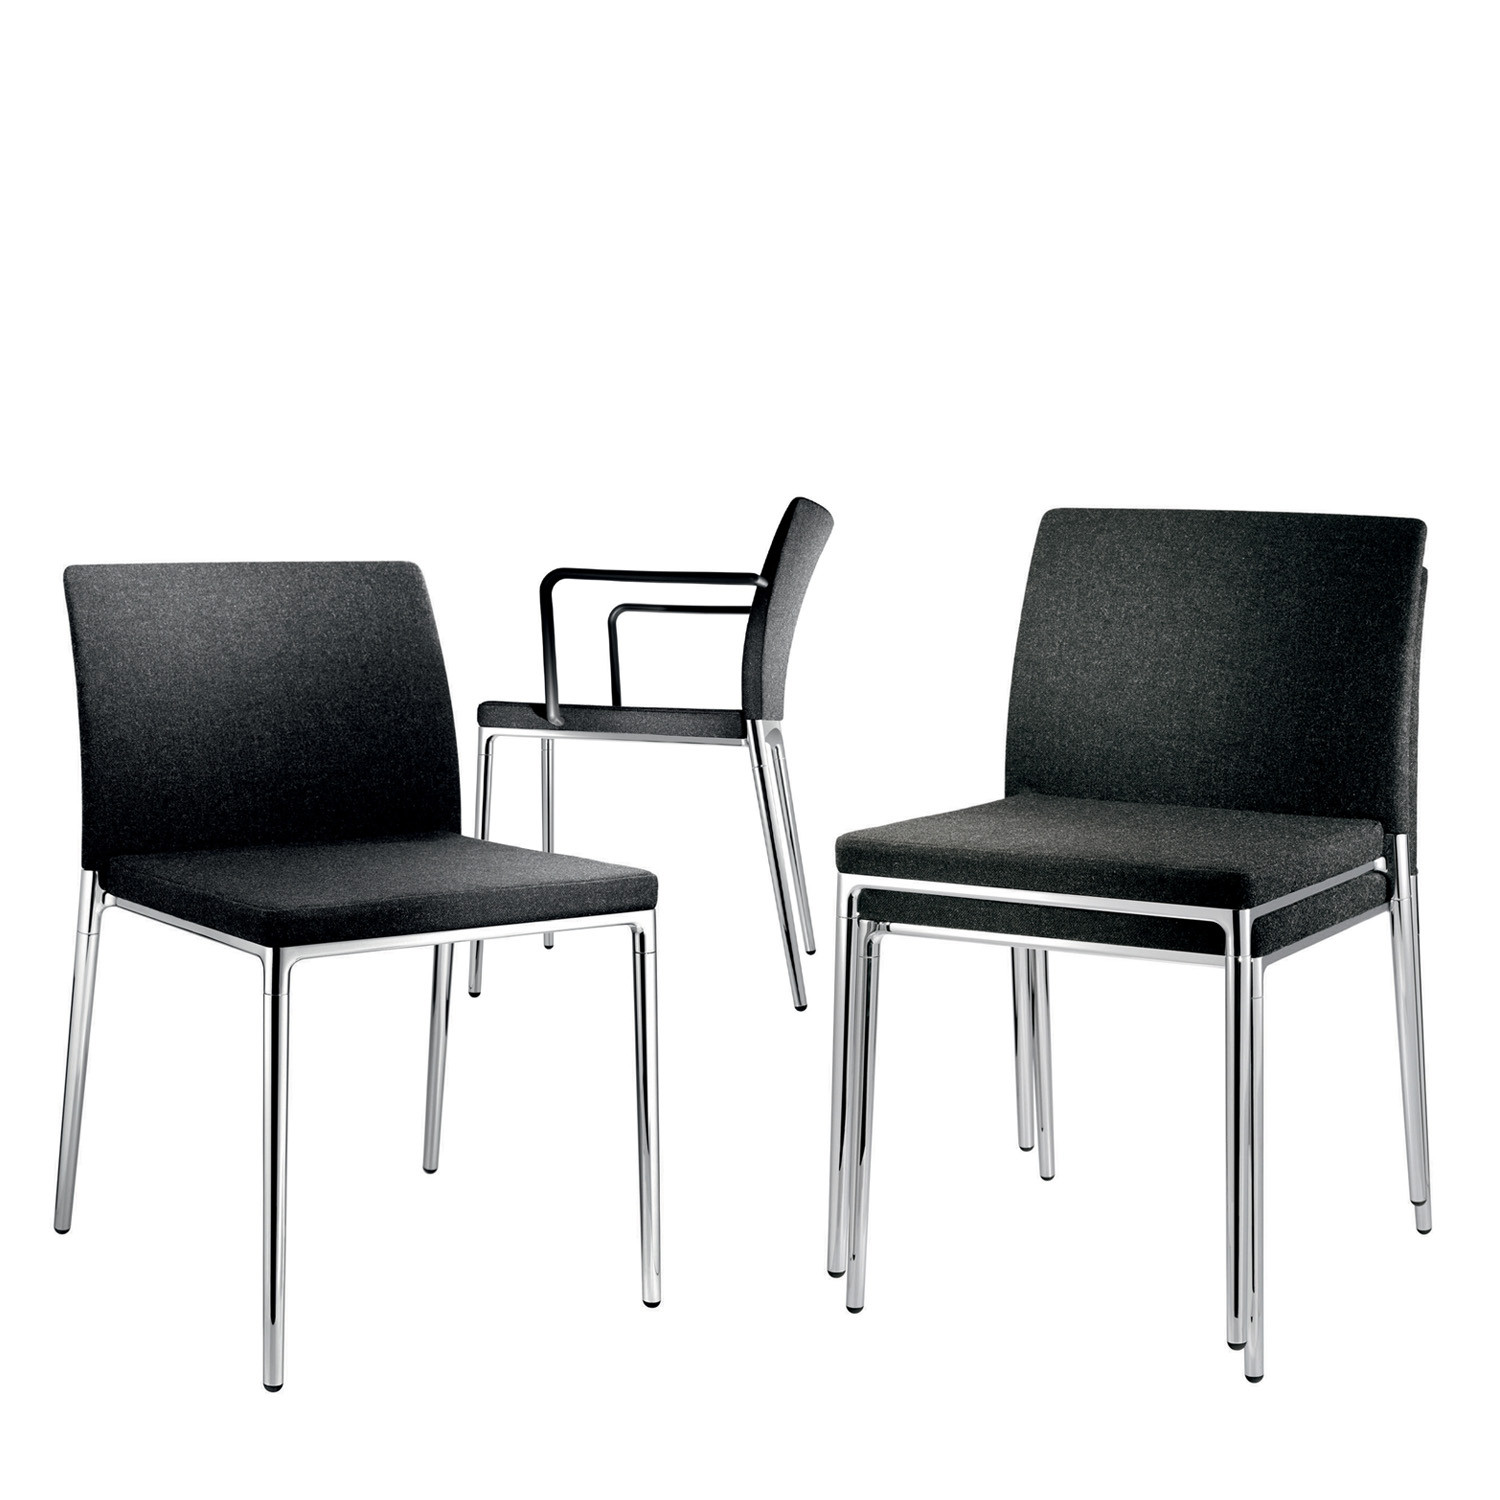 Wilkhan Ceno Chairs